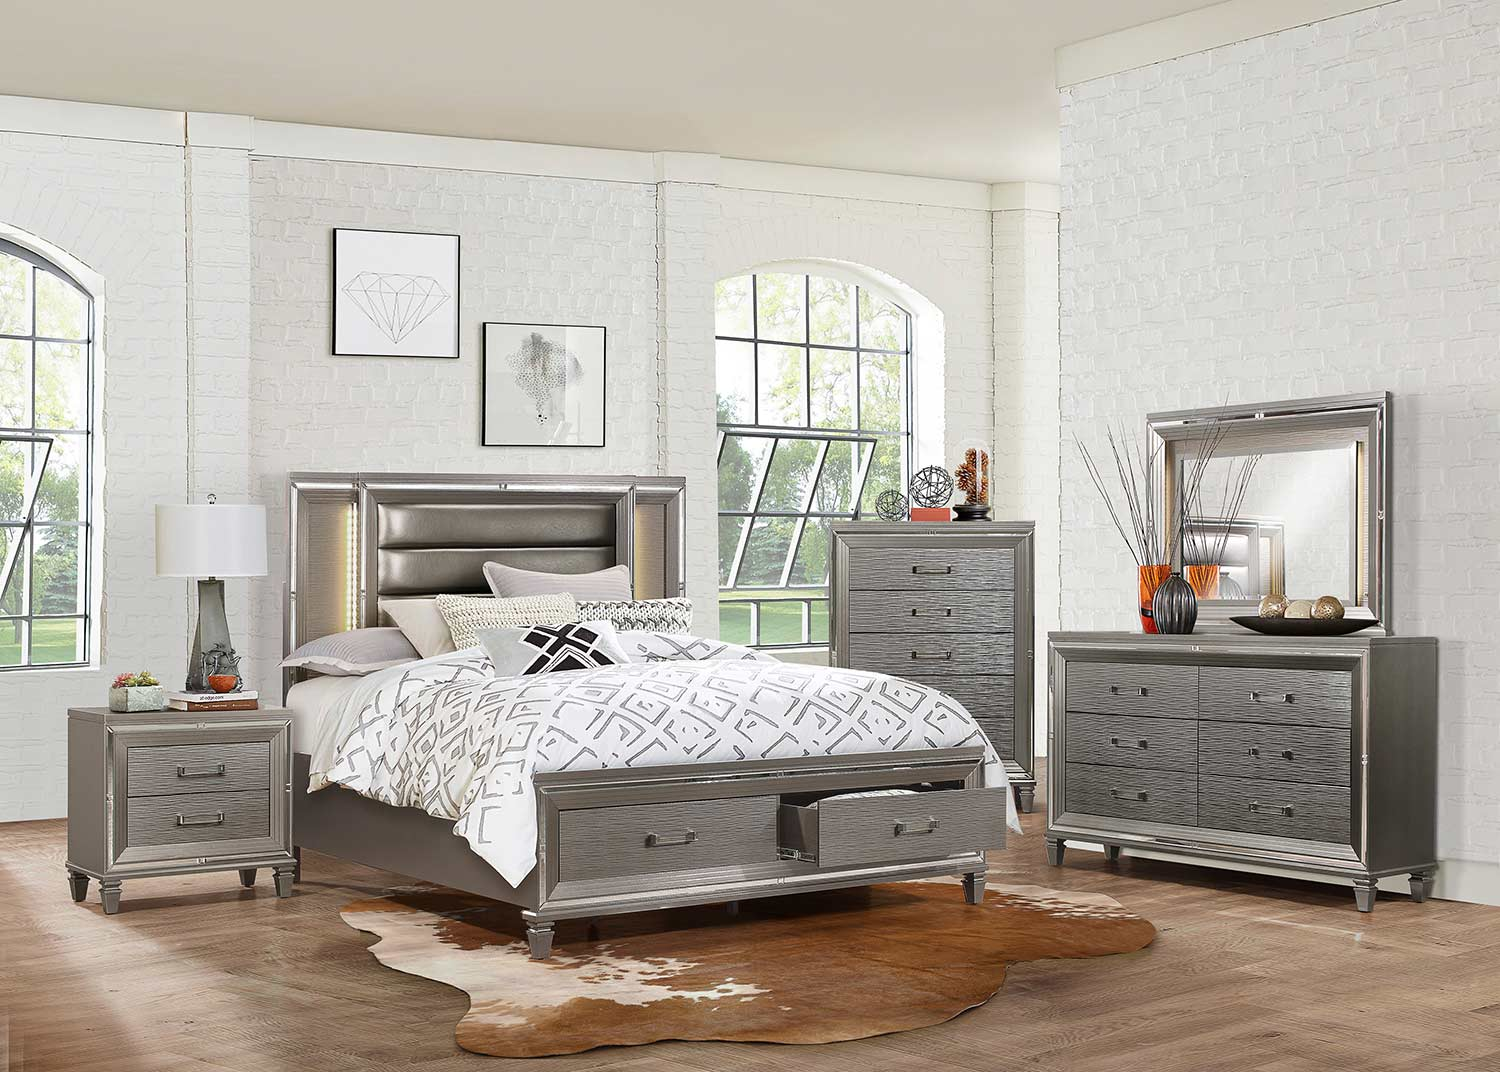 Homelegance Tamsin Bedroom Set - Silver-Gray Metallic